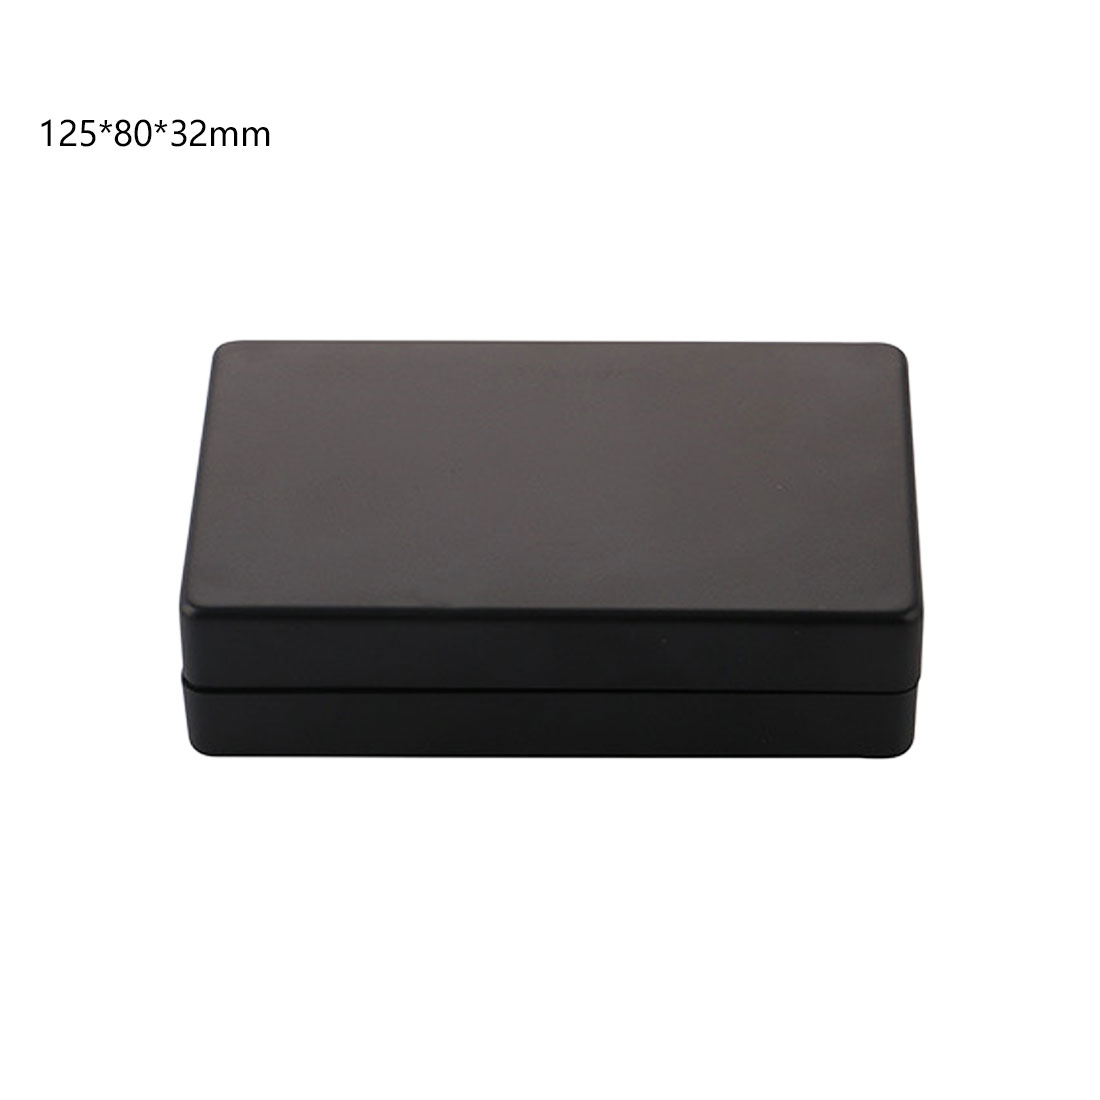 Black 125x80x32mm Waterproof Box Electronic Project Instrument Case Connector